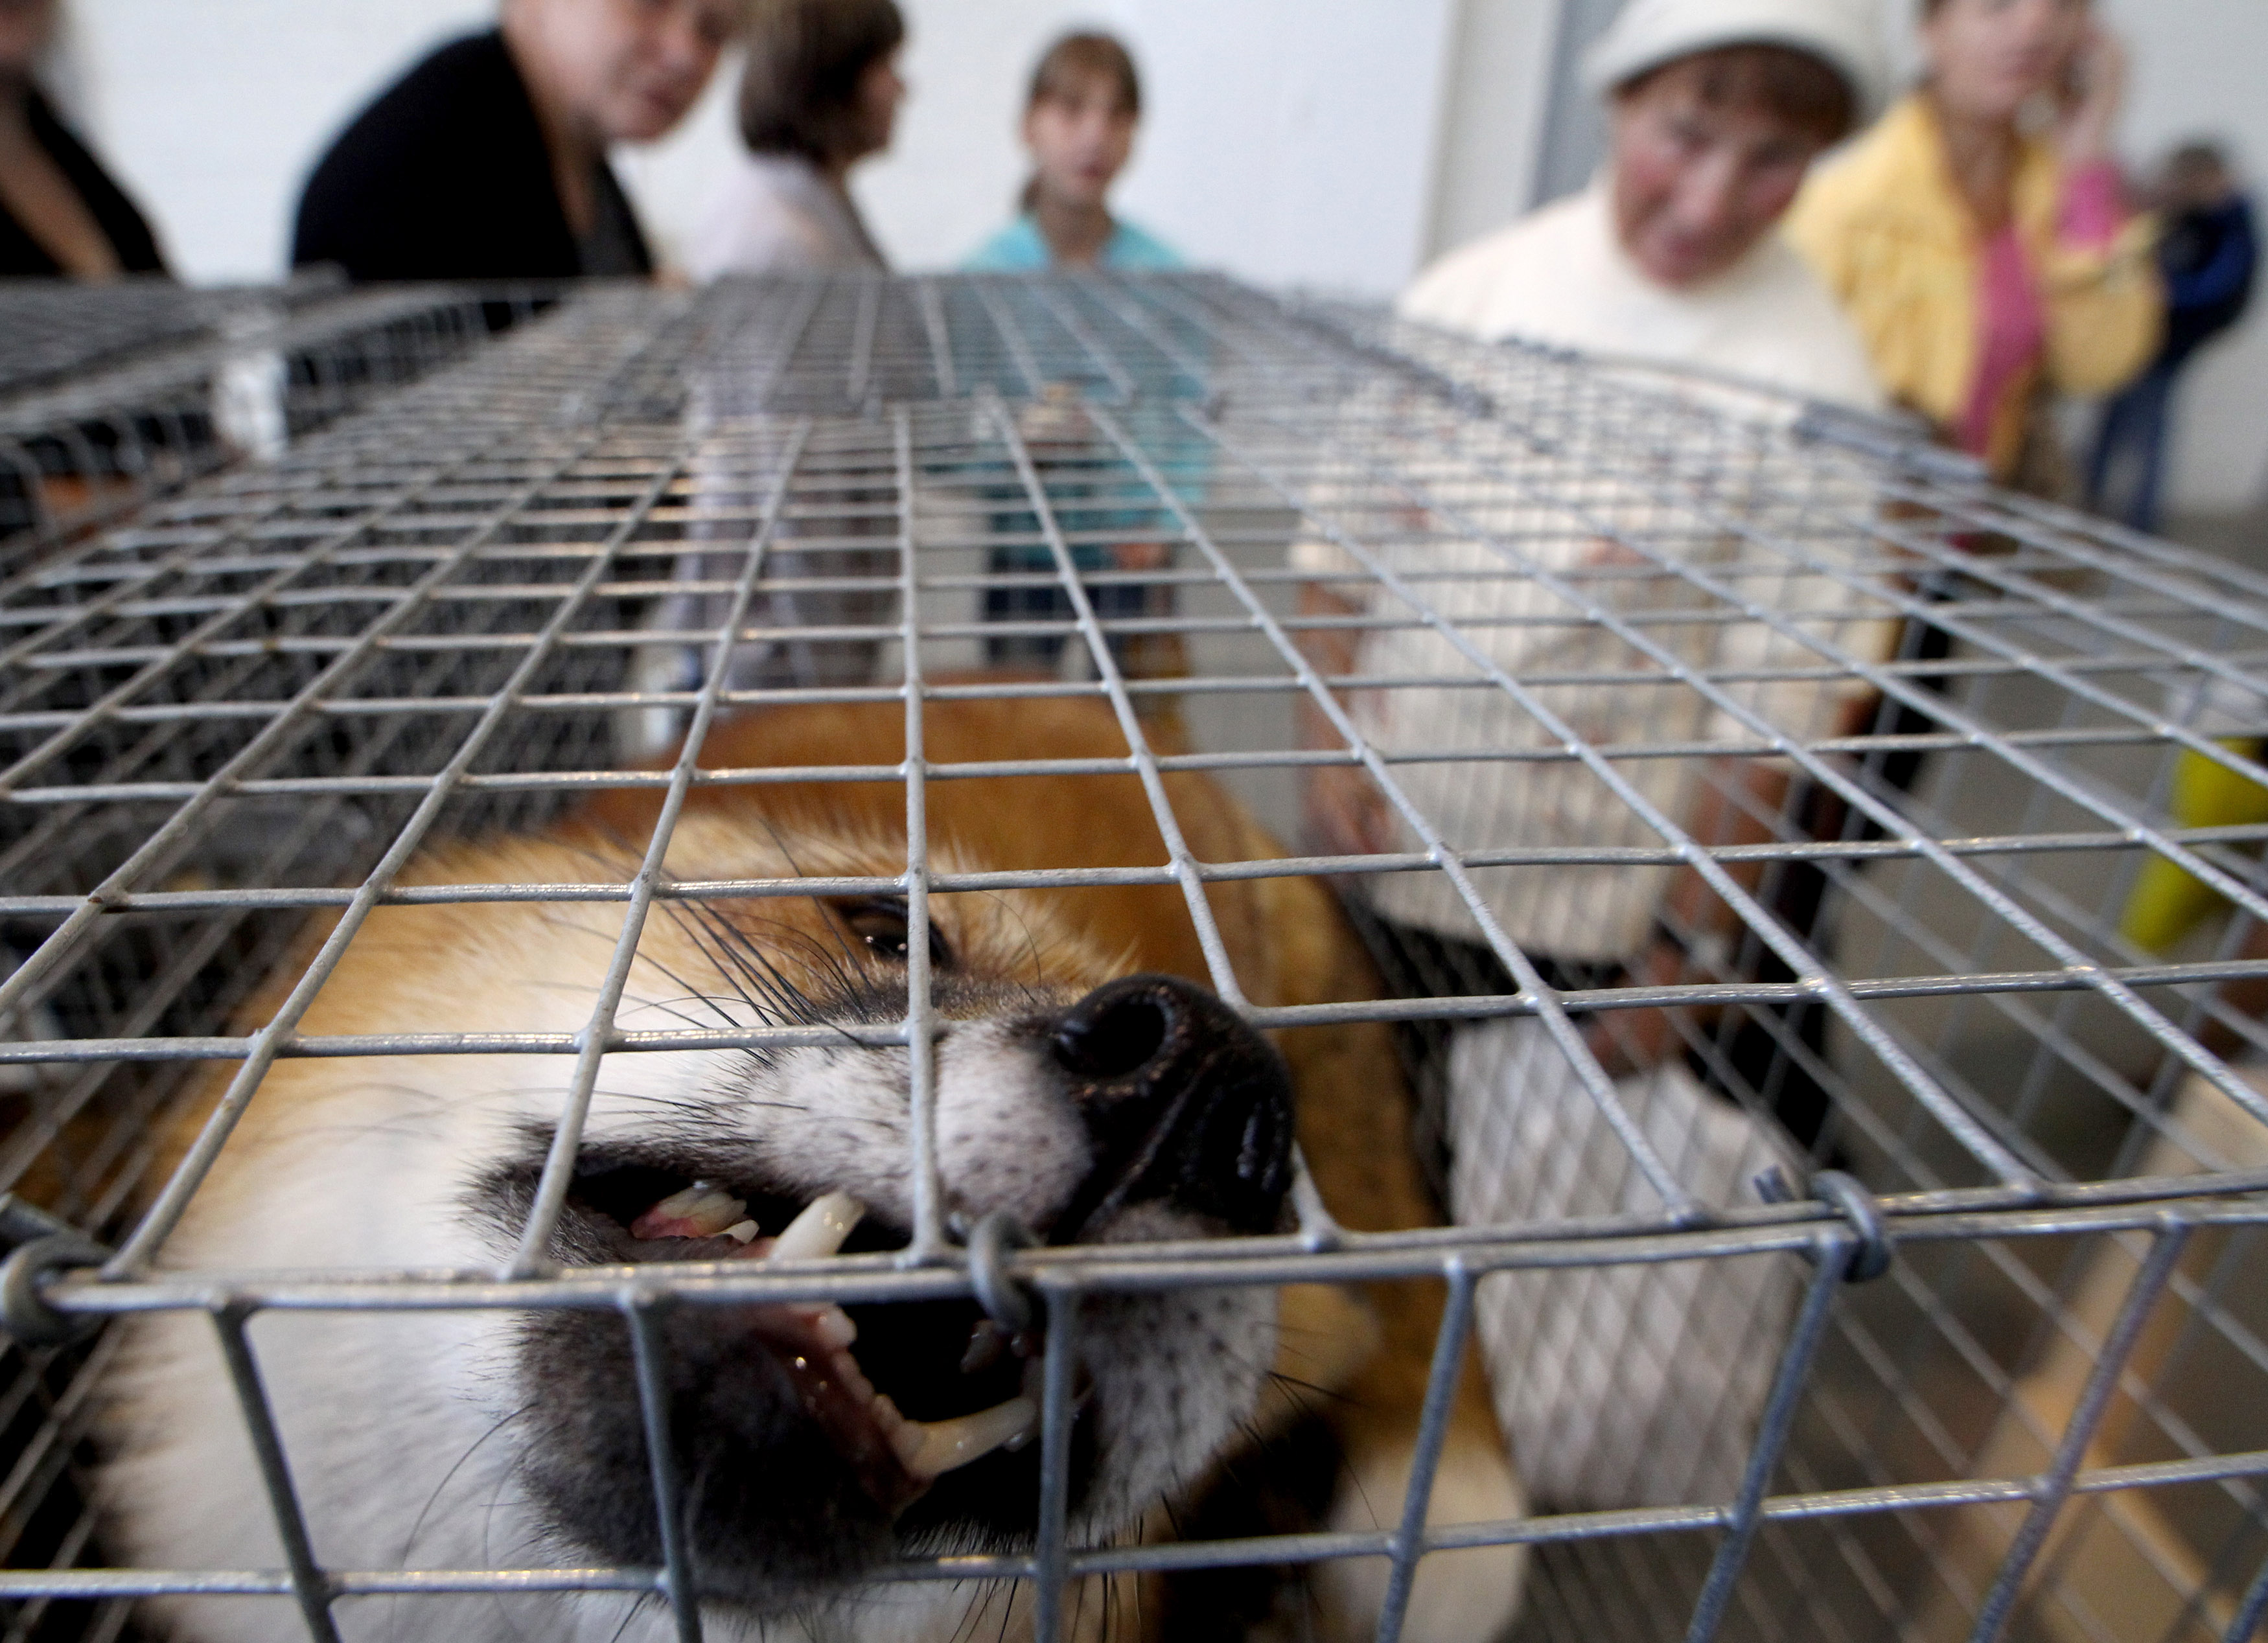 """Visitors stand near a cage with a fox during XIX international agro industrial exhibition called """"Agrorus-2010"""" fair in St. Petersburg, August 25, 2010. The fair exhibits agricultural machinery, agro chemistry and housing construction products, veterinary science and farming goods.  REUTERS/Alexander Demianchuk  (RUSSIA - Tags: AGRICULTURE ENVIRONMENT ANIMALS BUSINESS) - RTR2HIZ6"""